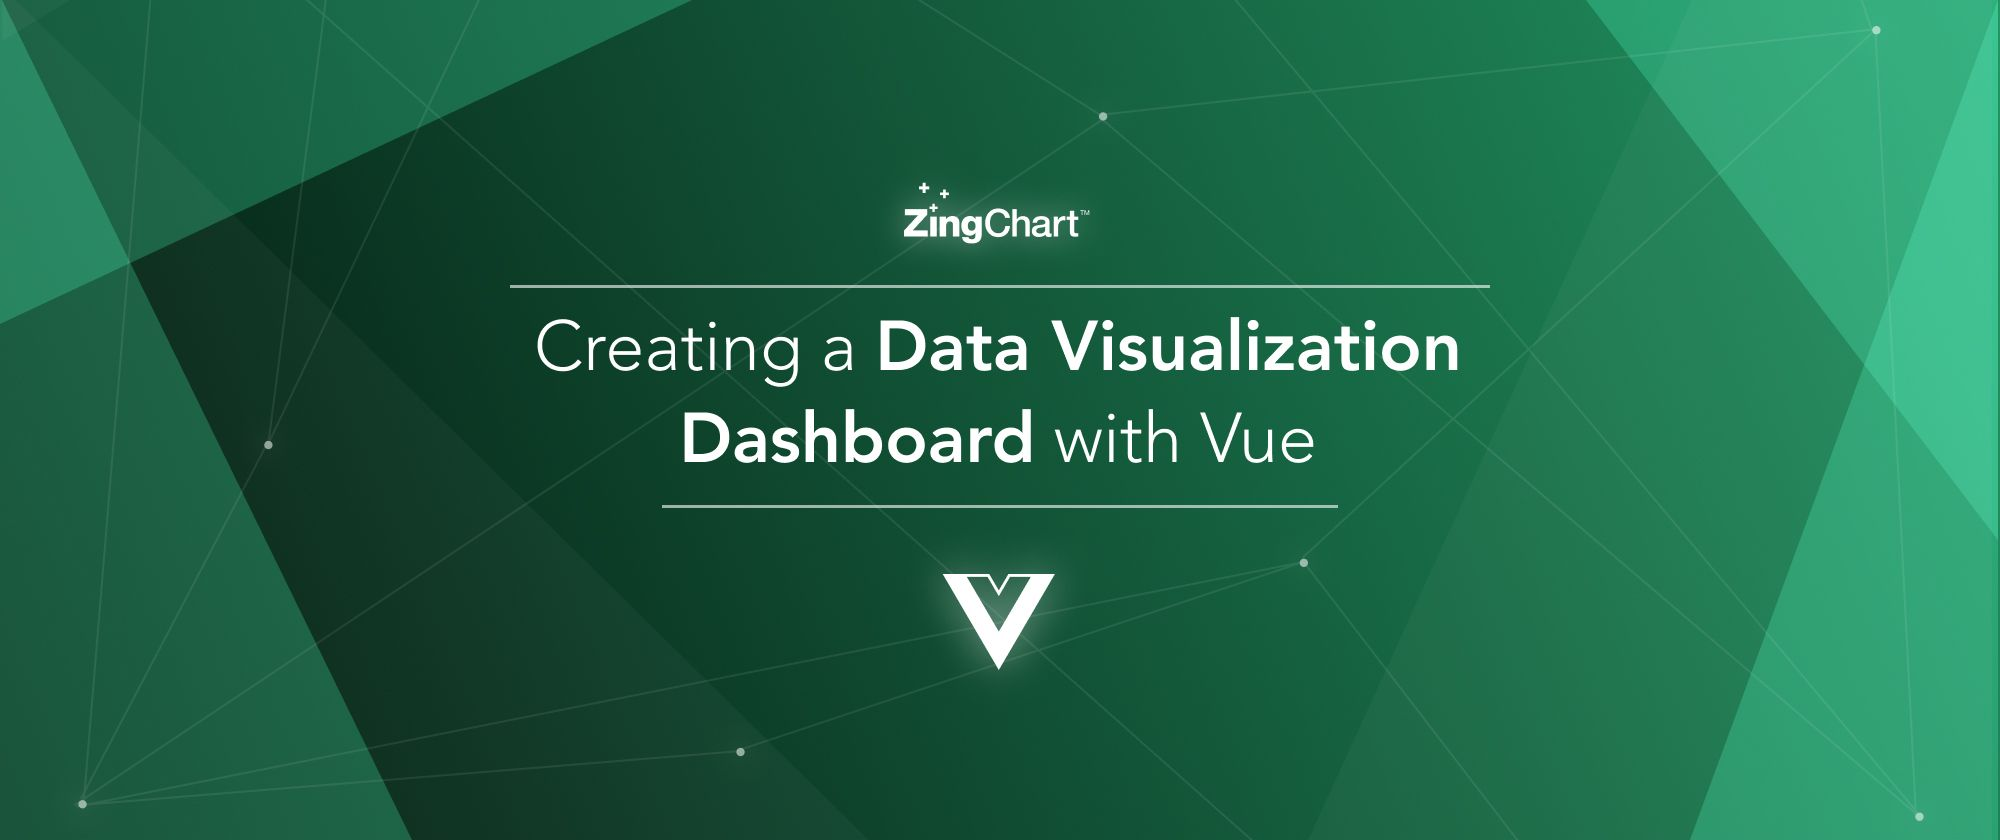 """Cover image for """"Creating a Data Visualization Dashboard withVue"""" blog post"""